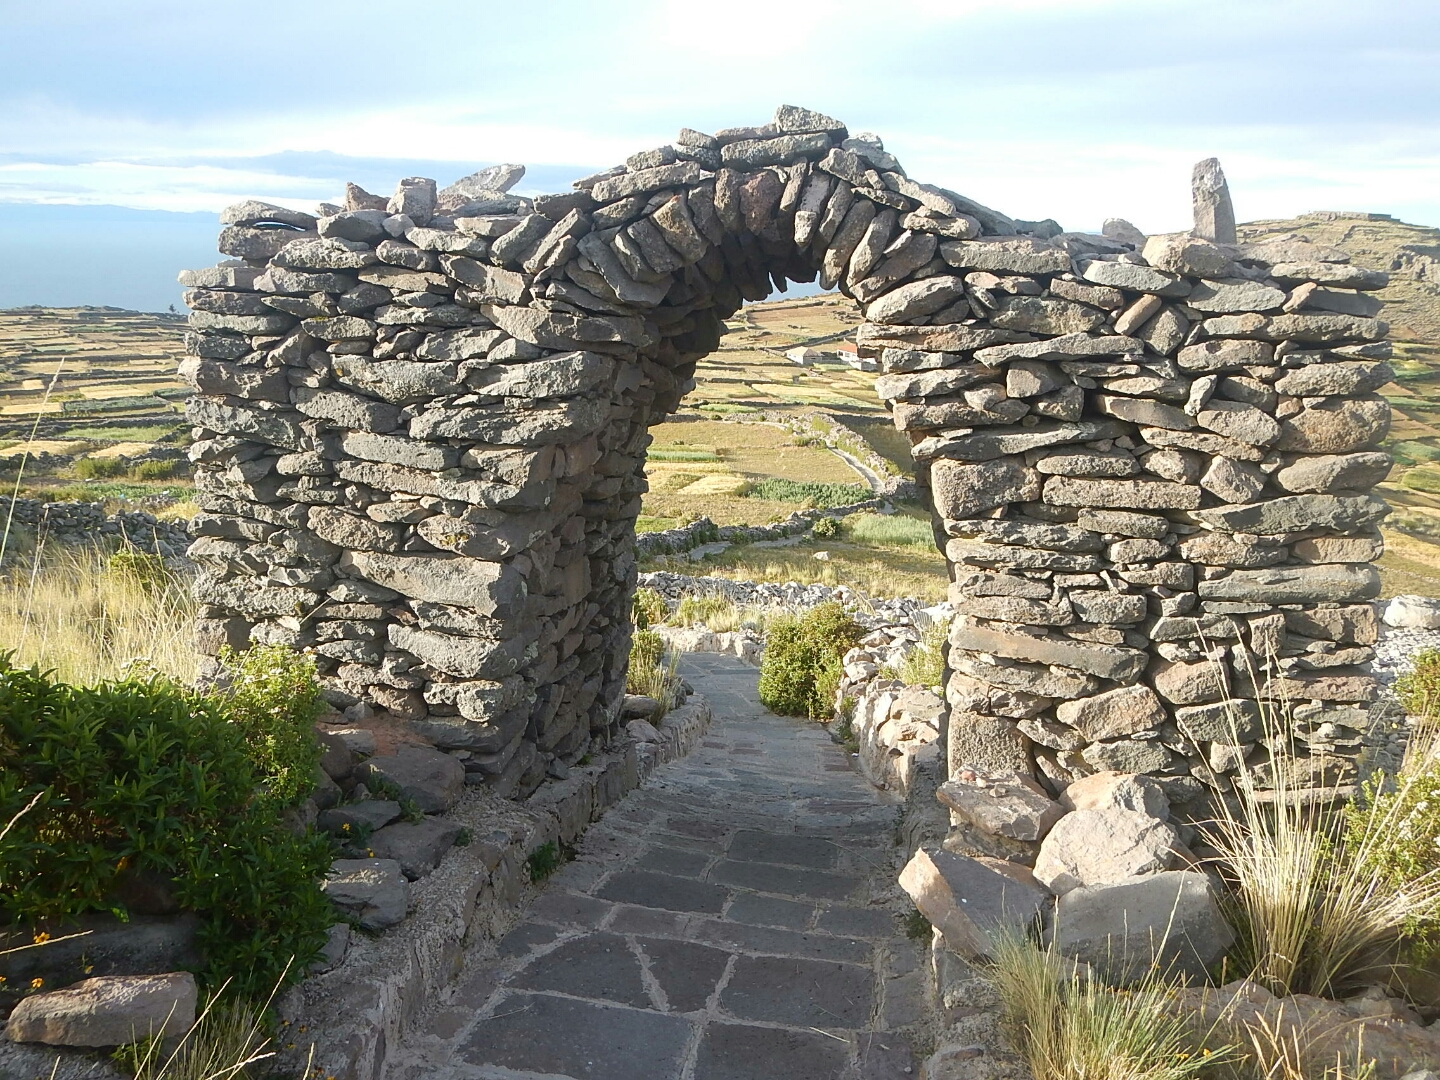 Archway of Pachamama Temple